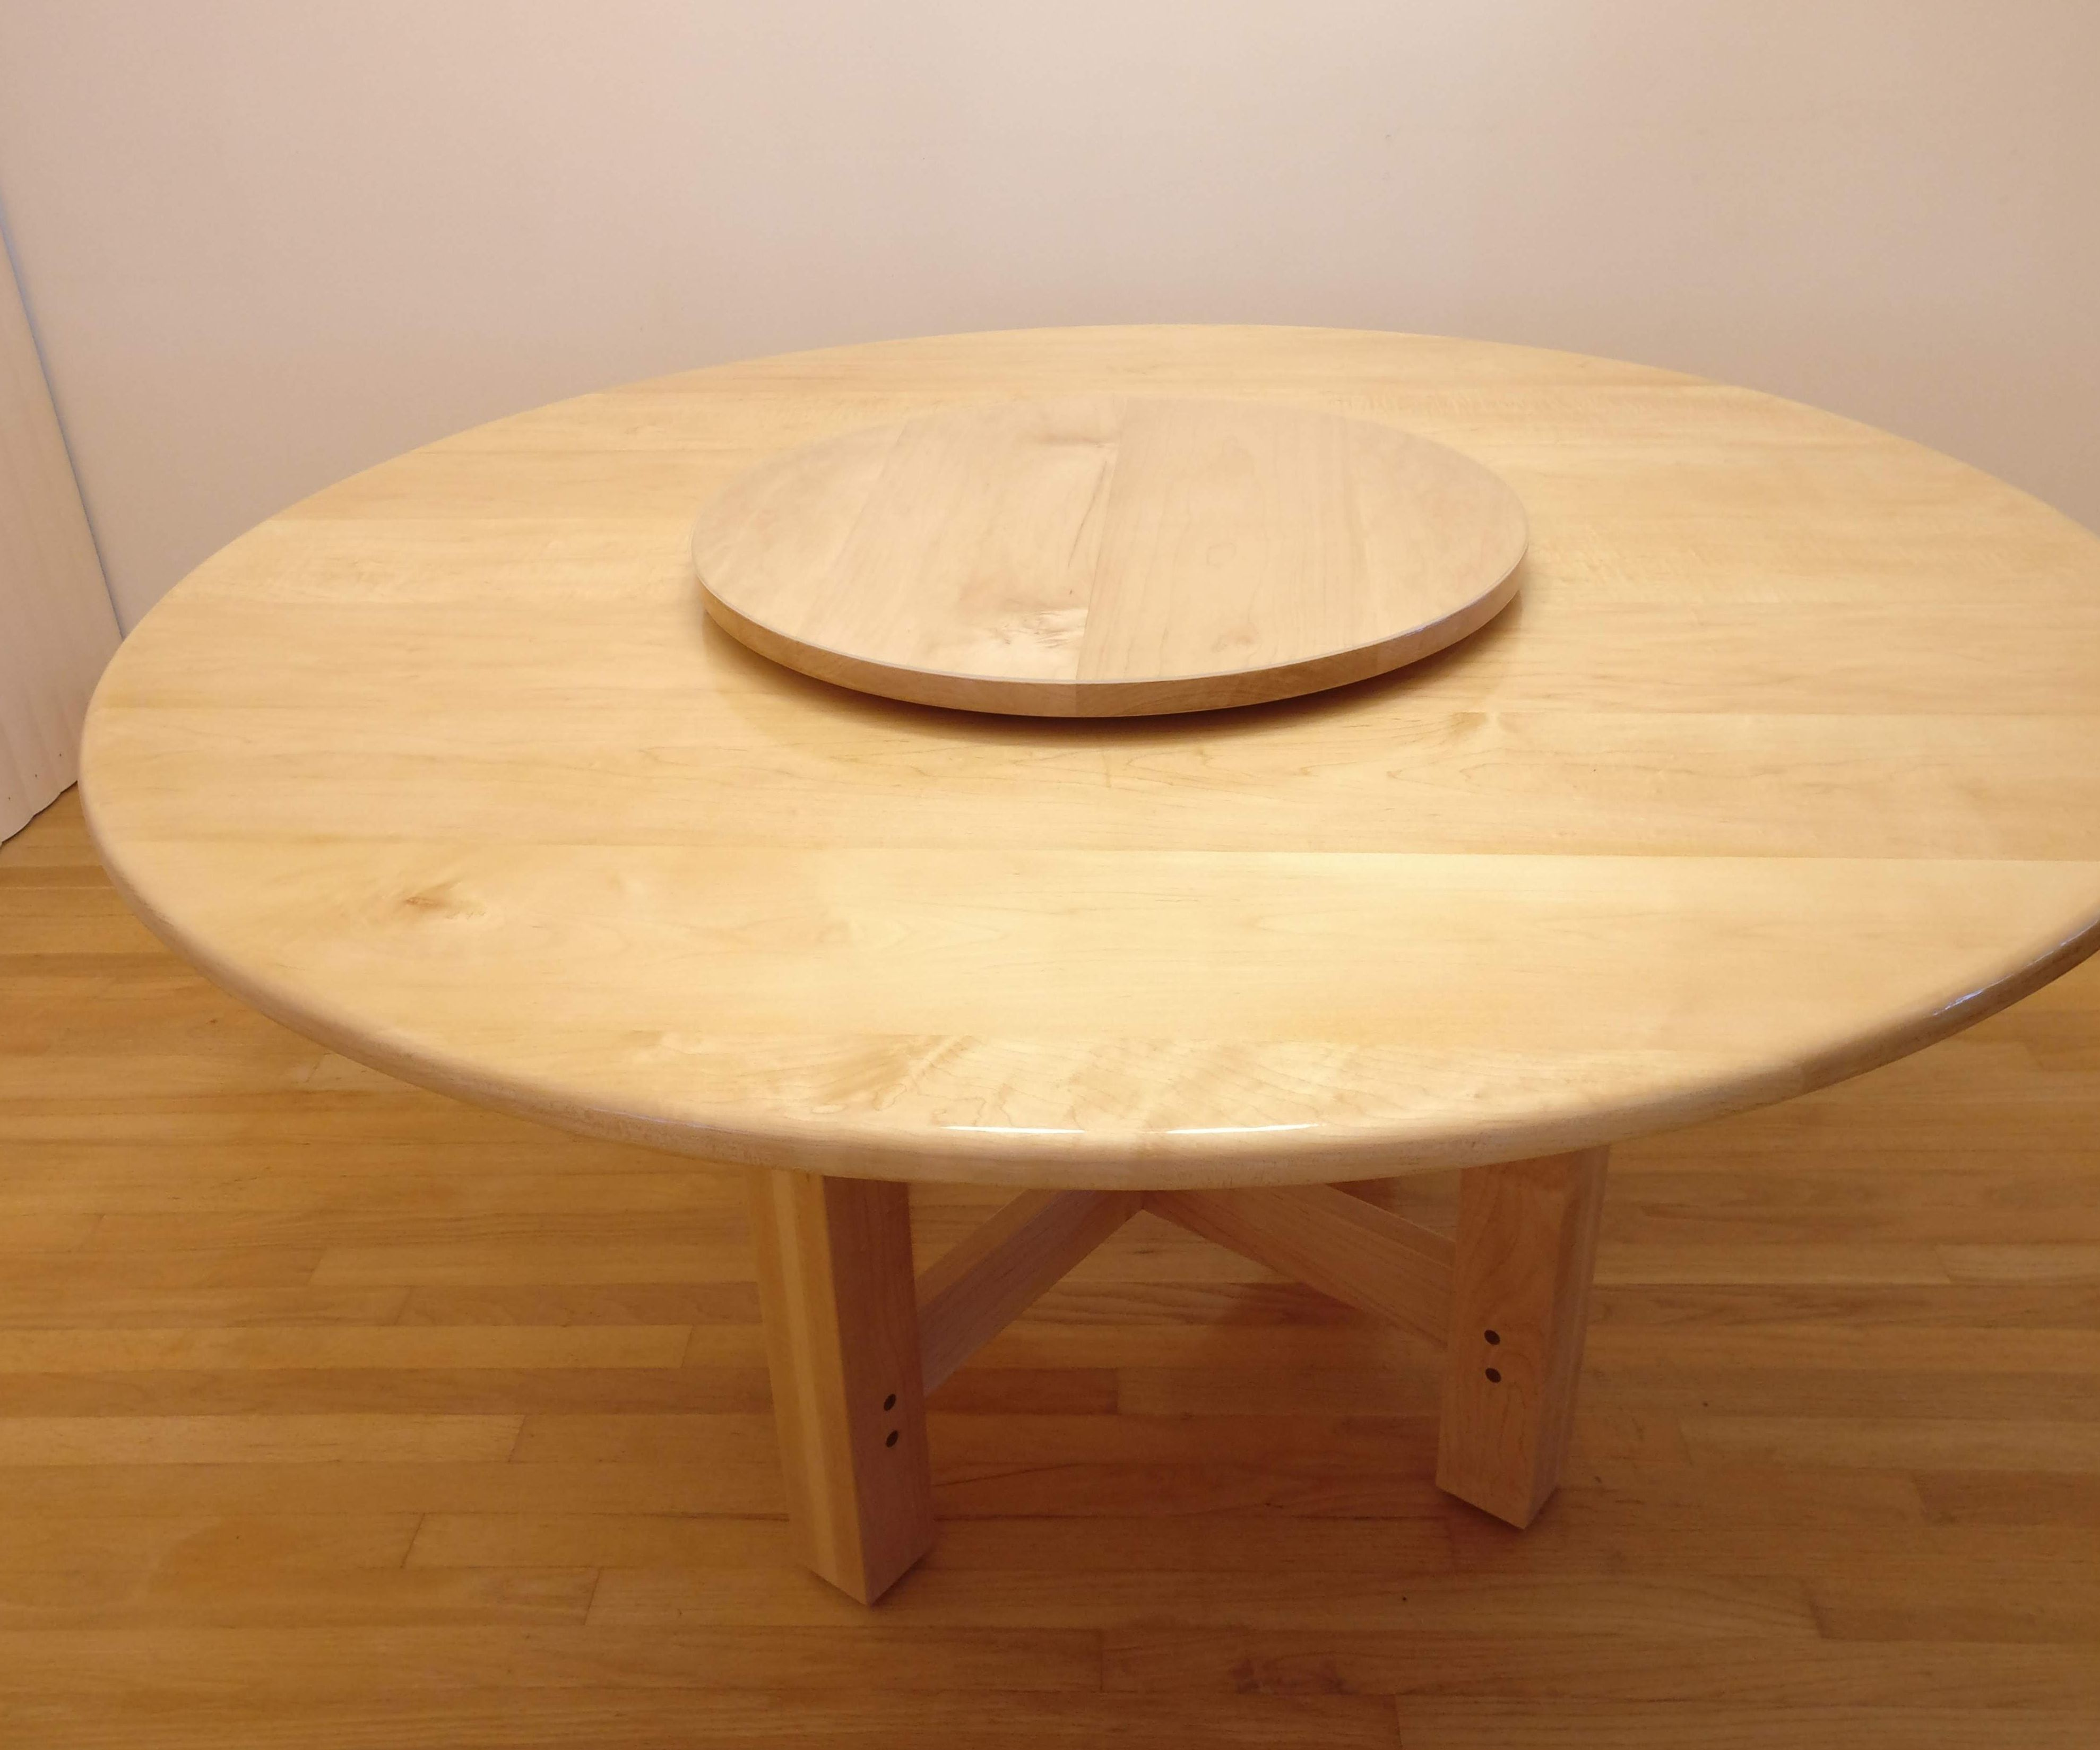 Make a Large Round Dining Table With Turntable